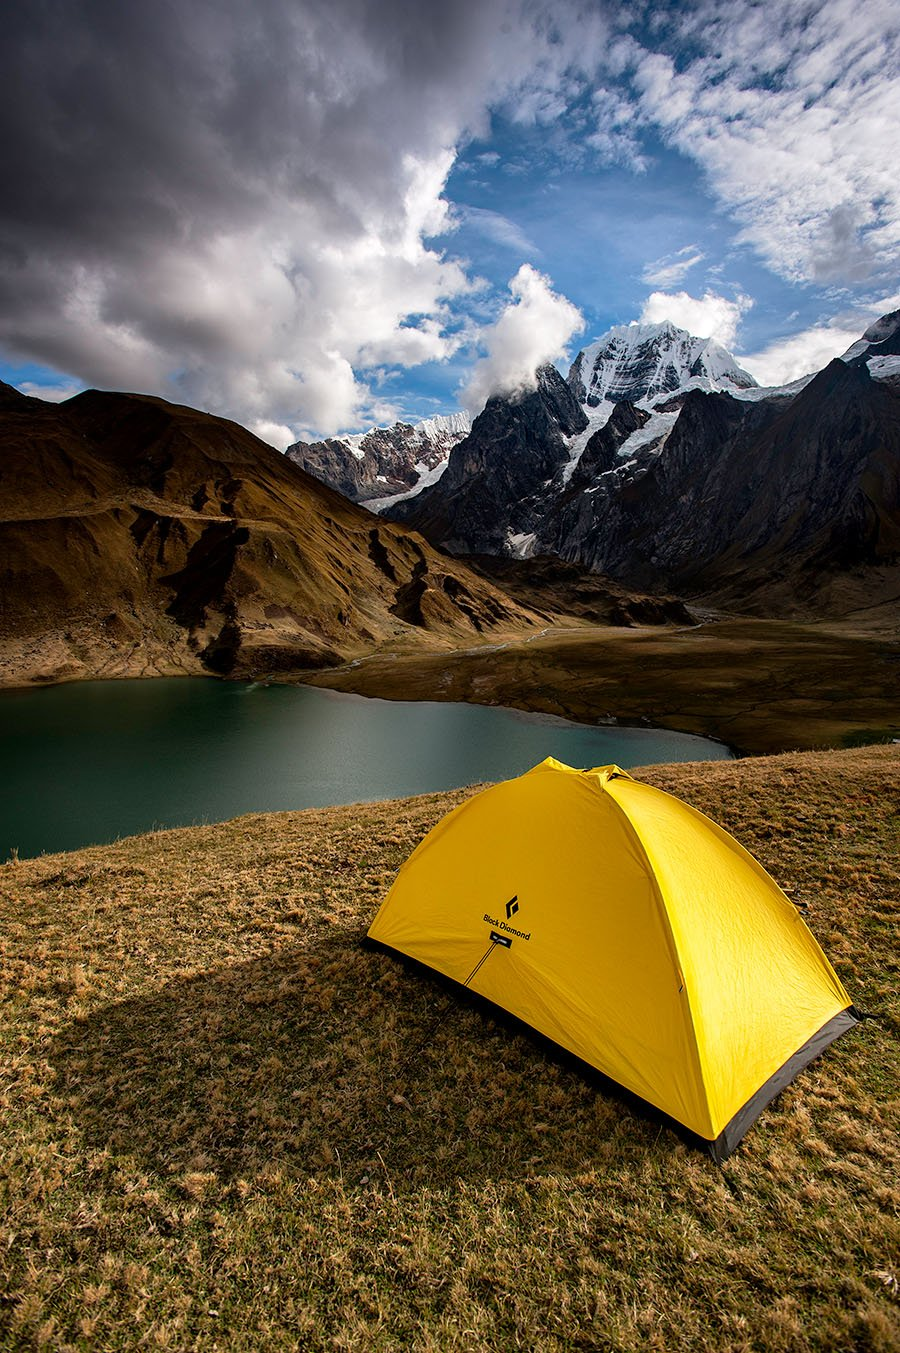 The single-wall Black Diamond Eldorado in Peru & Best 4-Season Tents of 2017-2018 | Switchback Travel